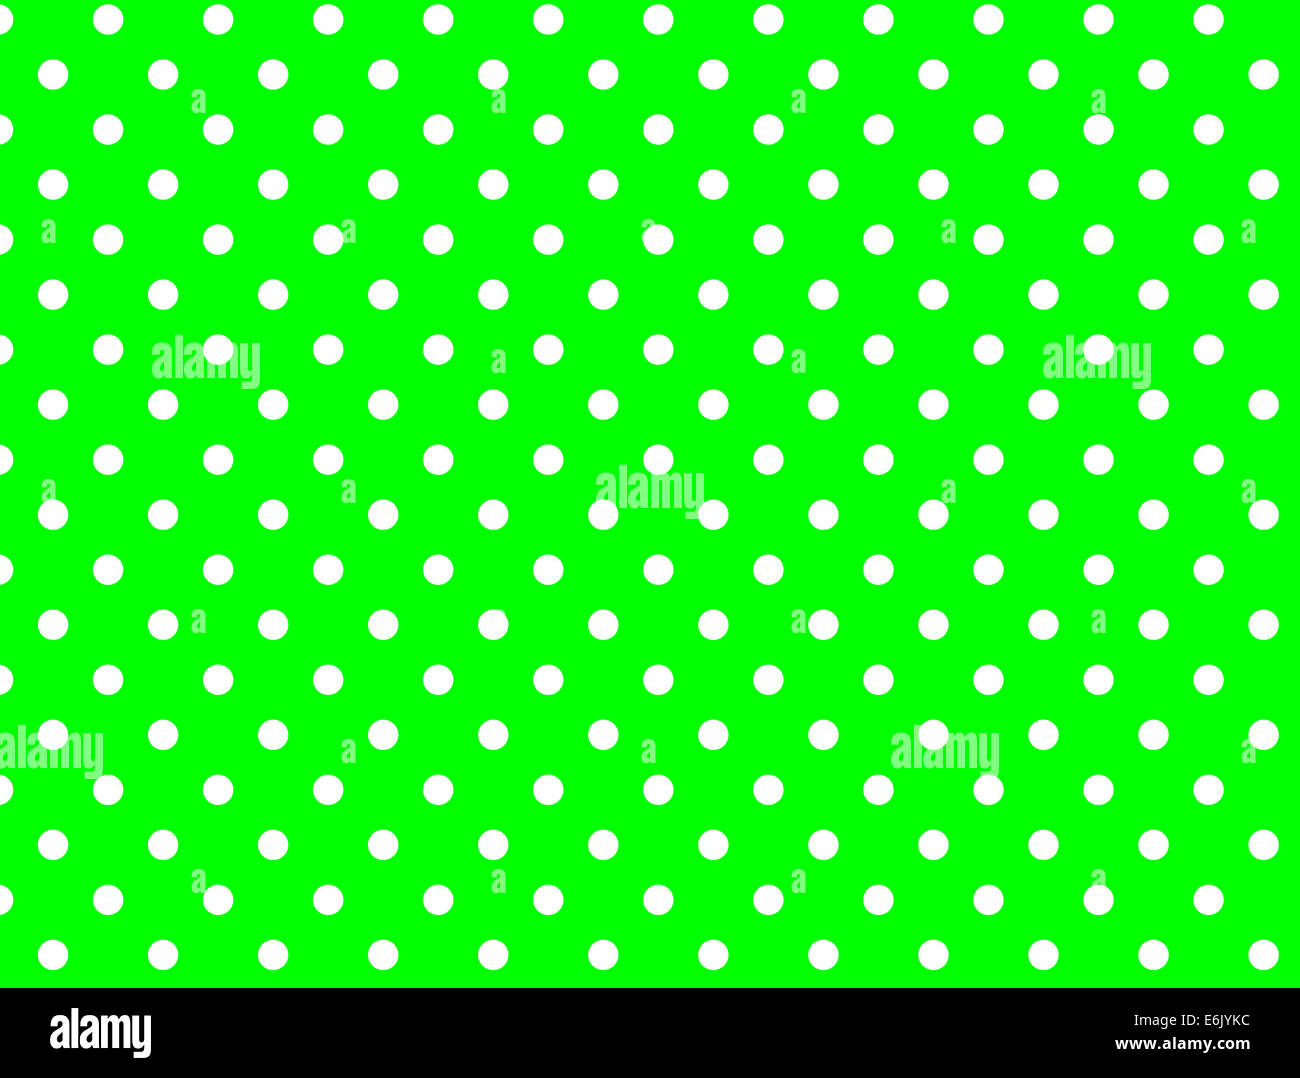 lime green background with white polka dots jpg stock photo